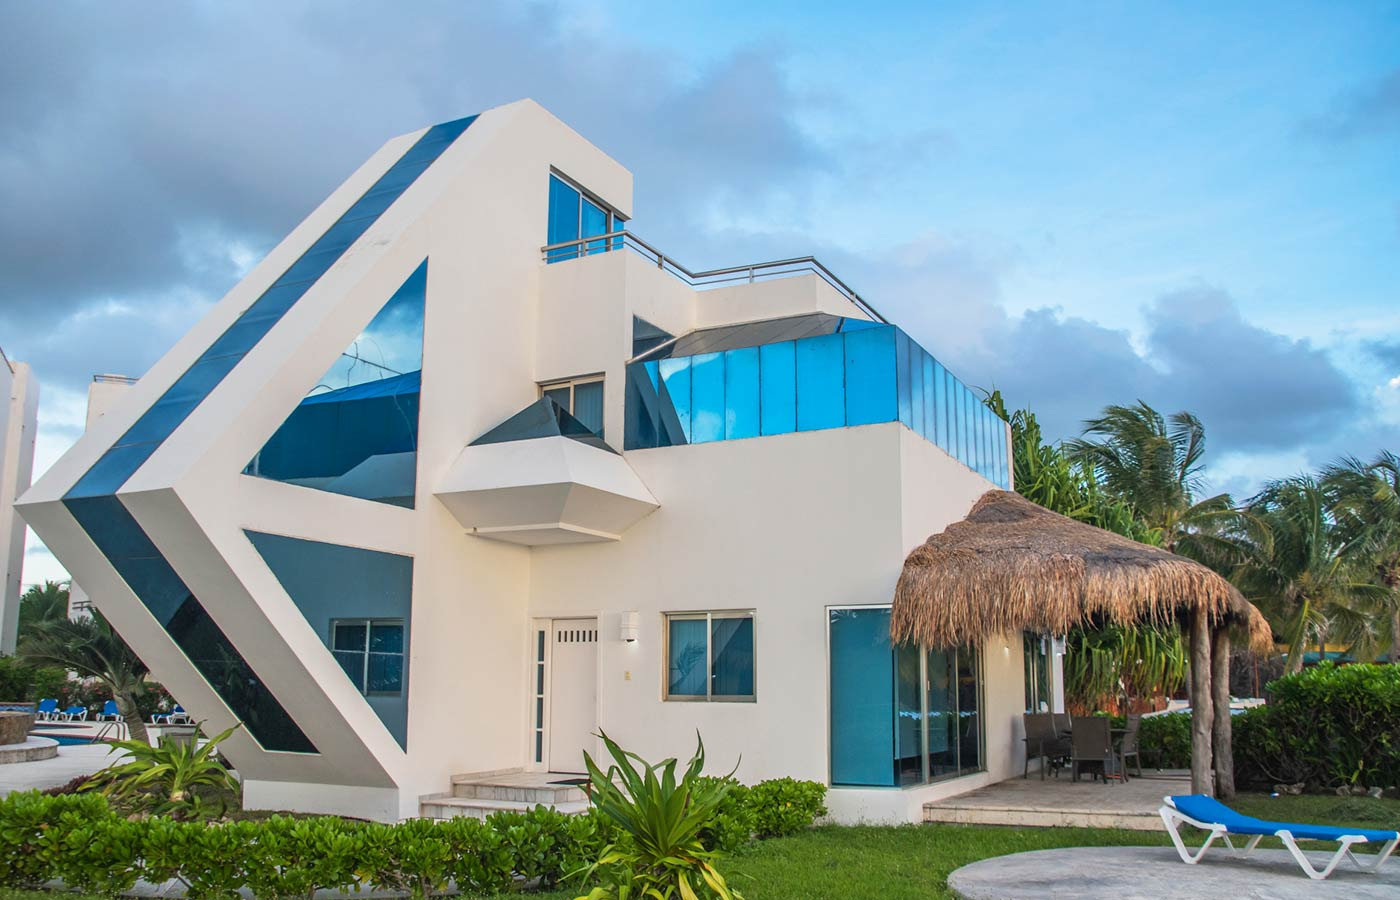 space age luxury villa surrounded by landscaped yard and palm trees